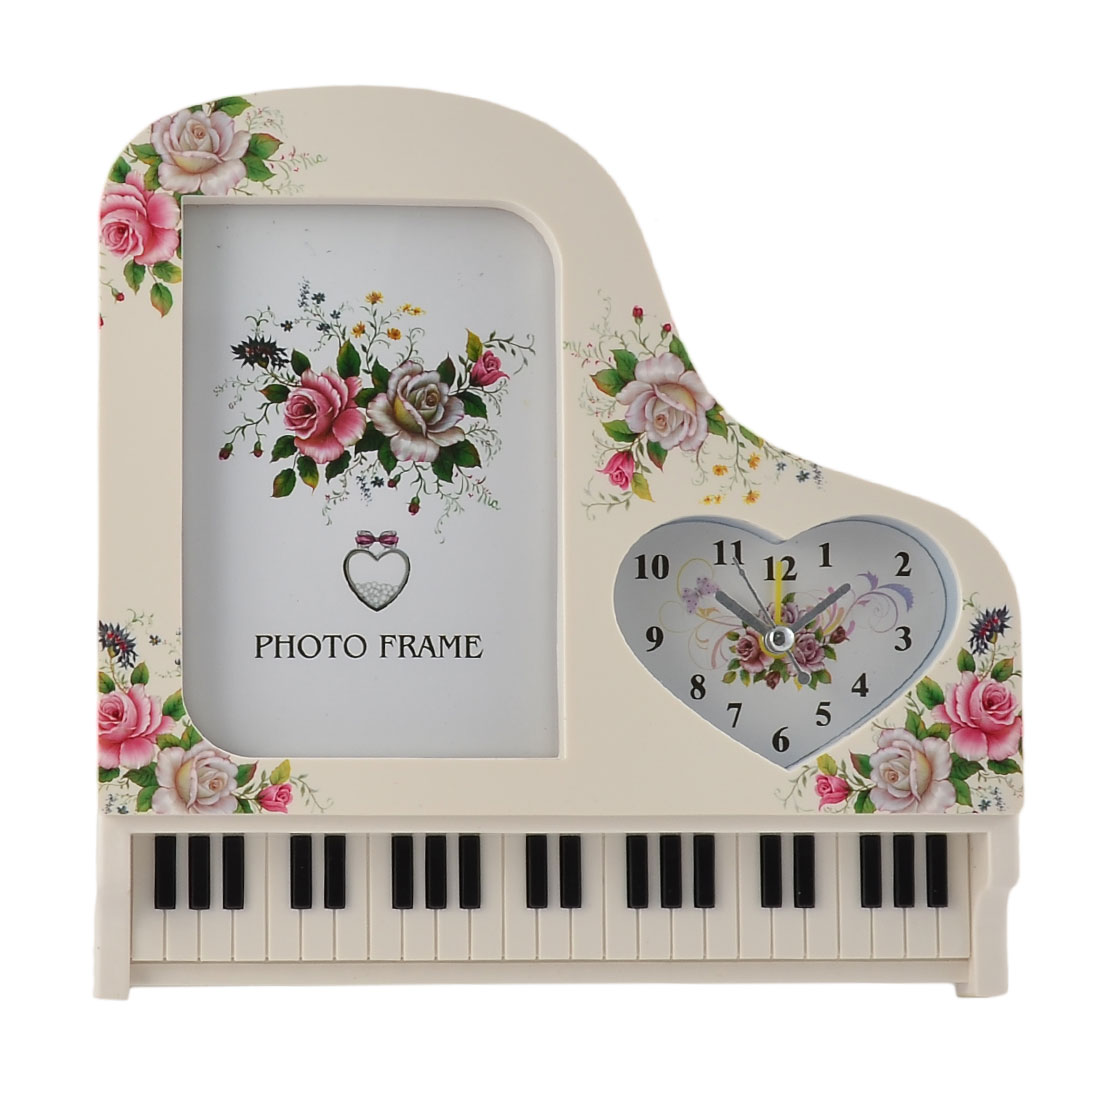 Birthday Gift Plastic Piano Shaped Photo Frame Decor Alarm Clock Off White